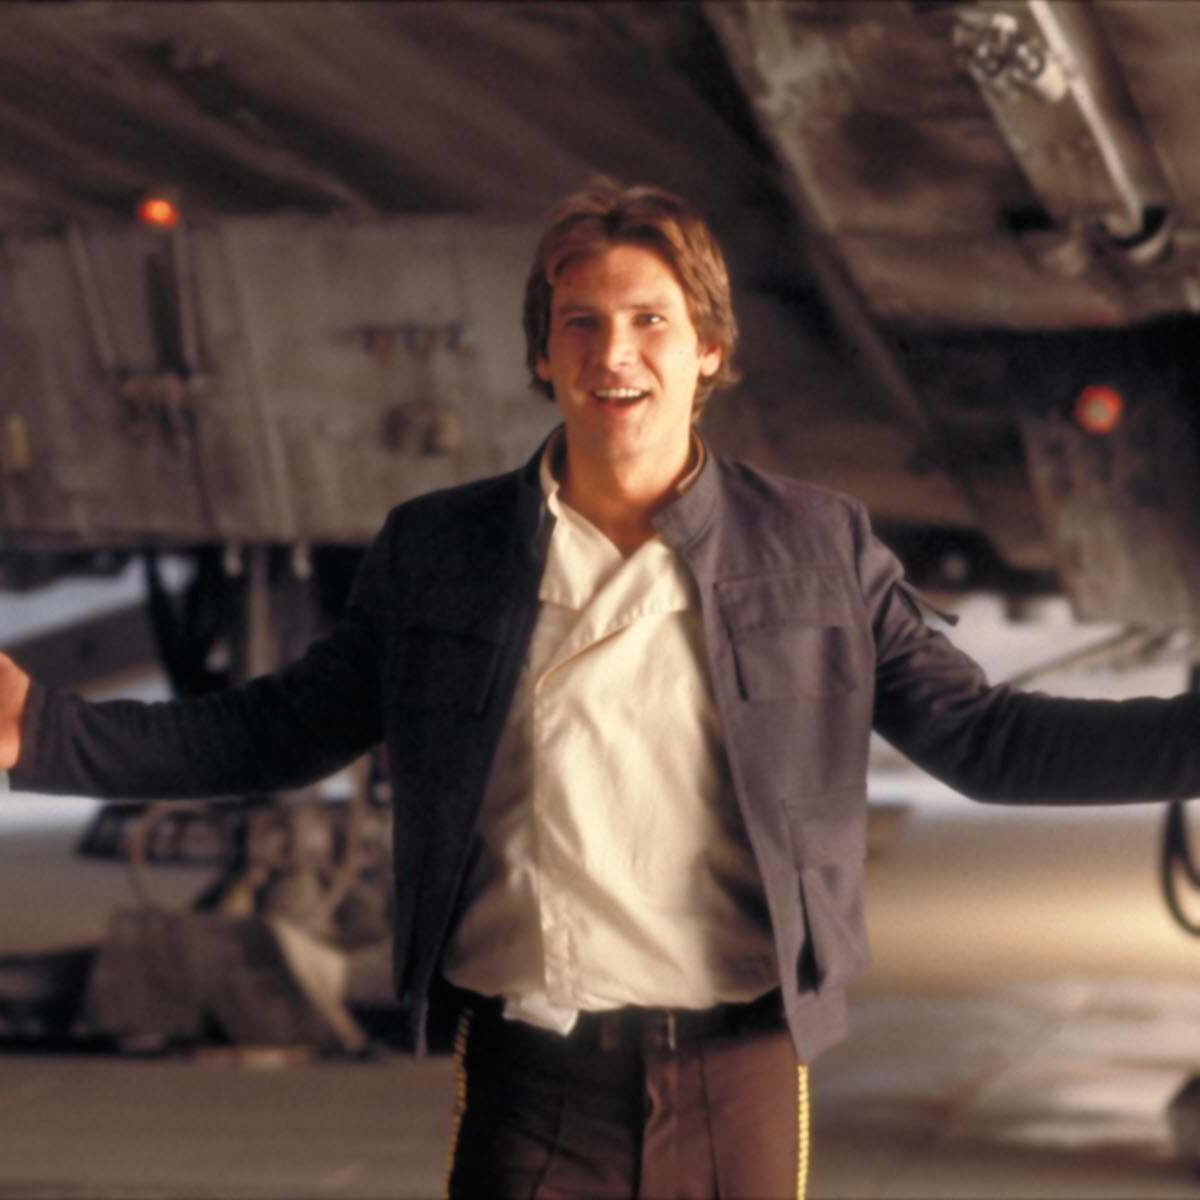 star_wars_movies_han_solo_harrison_ford_come_at_me_bro_1600x1200_wallpaper_Wallpaper_2560x1920_www.wallpaperswa.com_.jpg